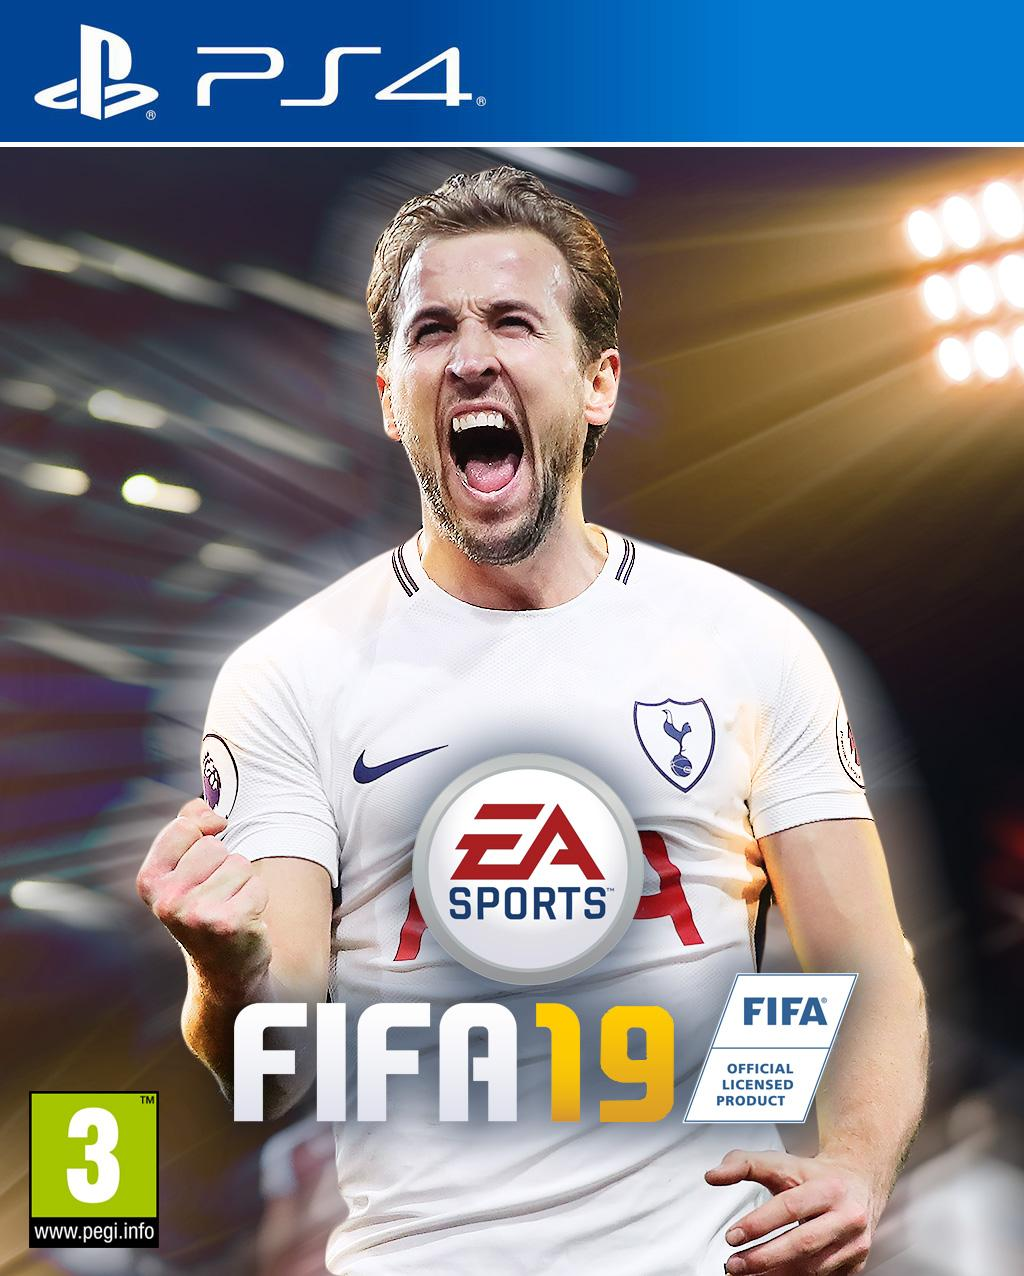 Our mocked up version of Harry Kane on the front of FIFA 19